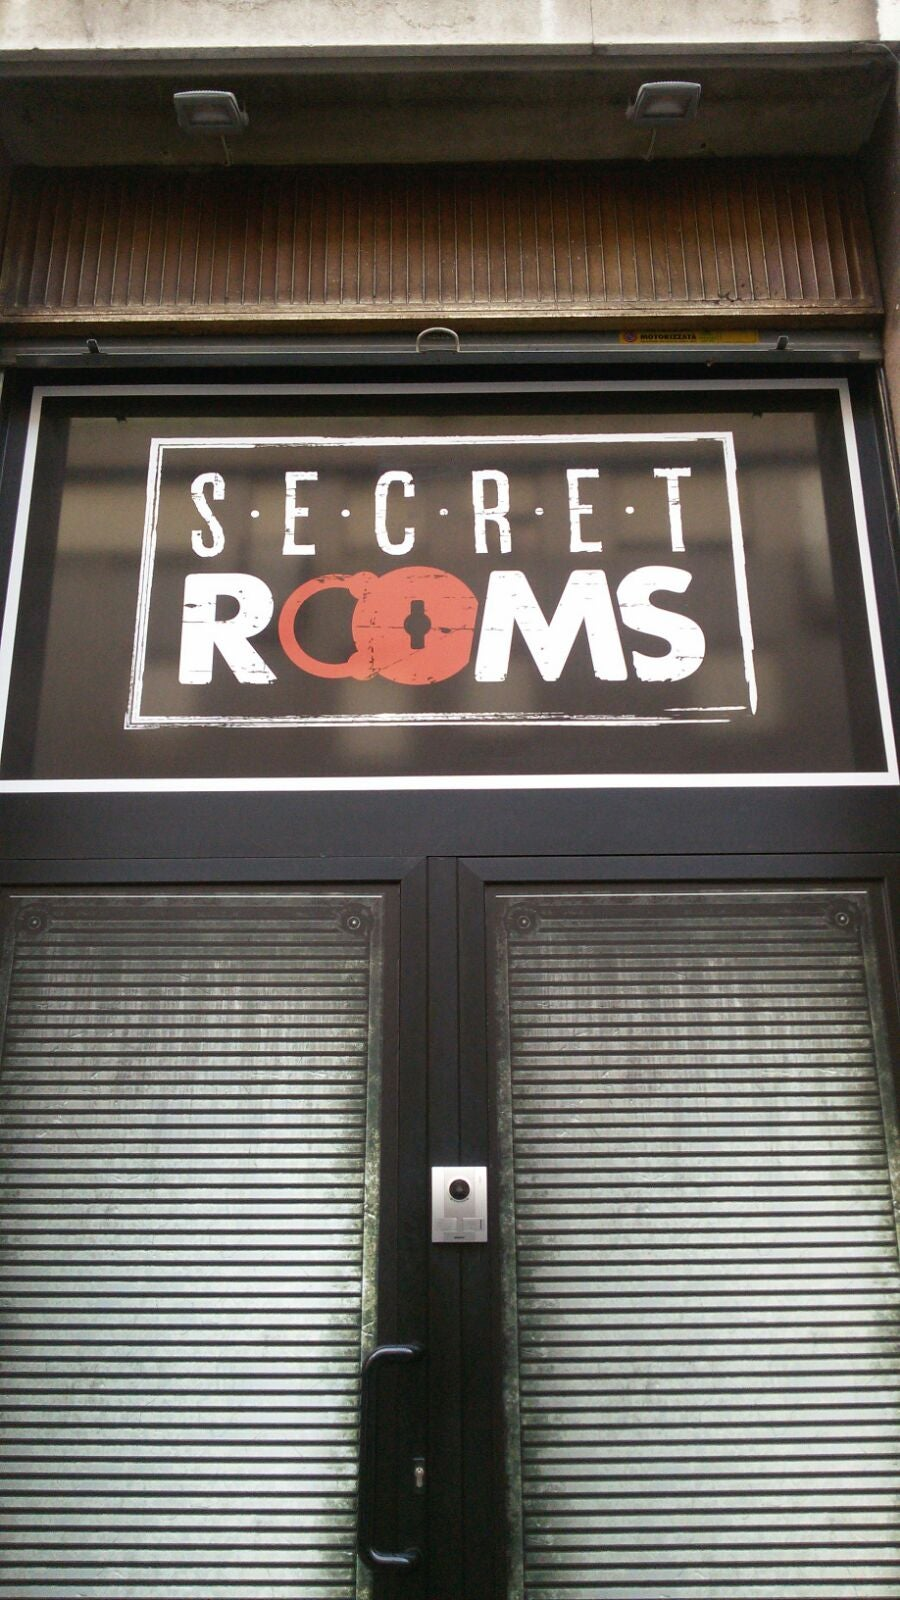 Restaurante en Secret rooms